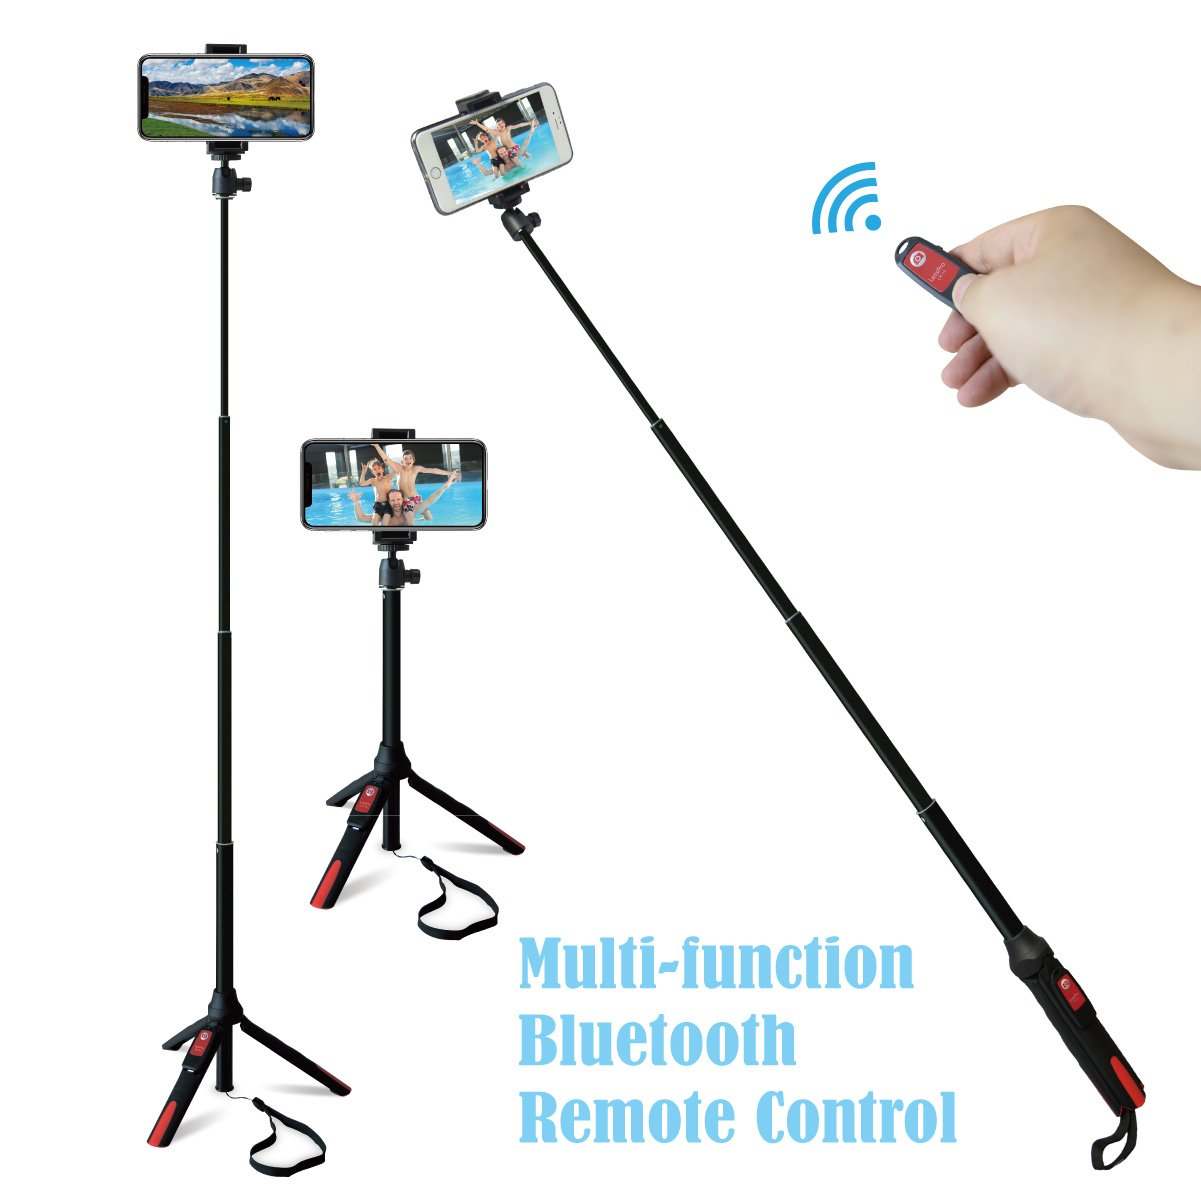 Selfie Stick Tripod with Bluetooth Wireless Remote for iPhone x 8 6 7 plus Android Samsung Galaxy S7 S8 Plus Edge Extendable Monopod Aluminum Alloy 360 Degree Rotation